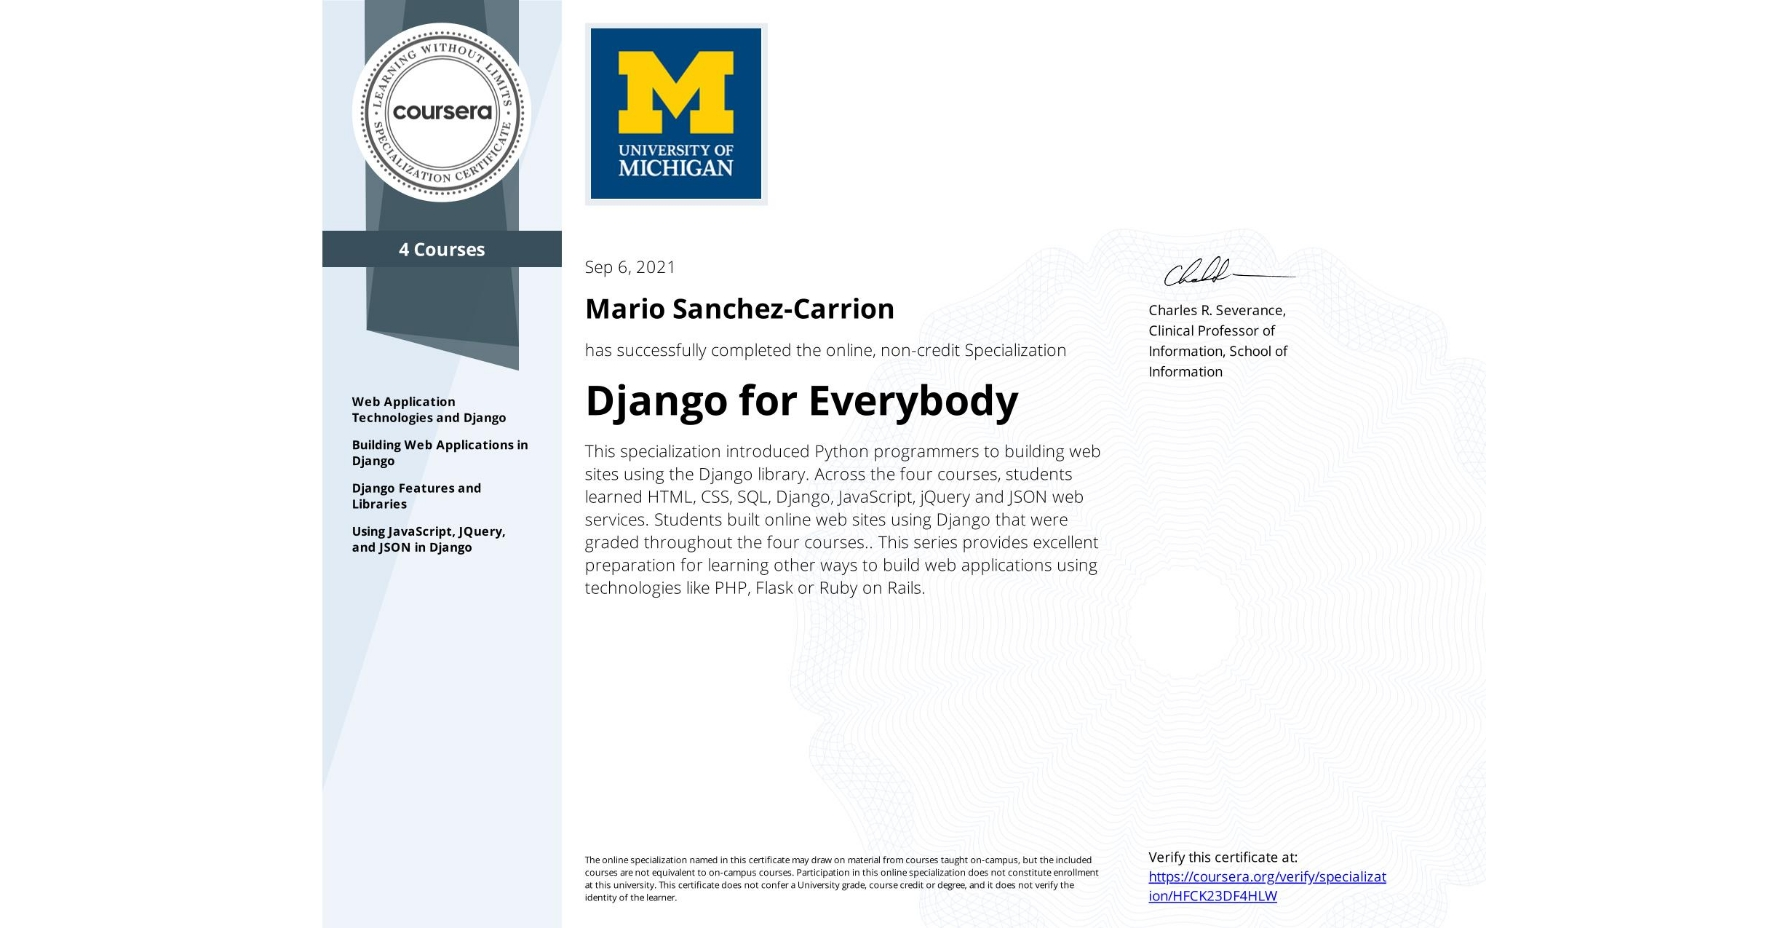 View certificate for Mario Sanchez-Carrion, Django for Everybody, offered through Coursera. This specialization introduced Python programmers to building web sites using the Django library. Across the four courses, students learned HTML, CSS, SQL, Django, JavaScript, jQuery and JSON web services. Students built online web sites using Django that were graded throughout the four courses.. This series provides excellent preparation for learning other ways to build web applications using technologies like PHP, Flask or Ruby on Rails.